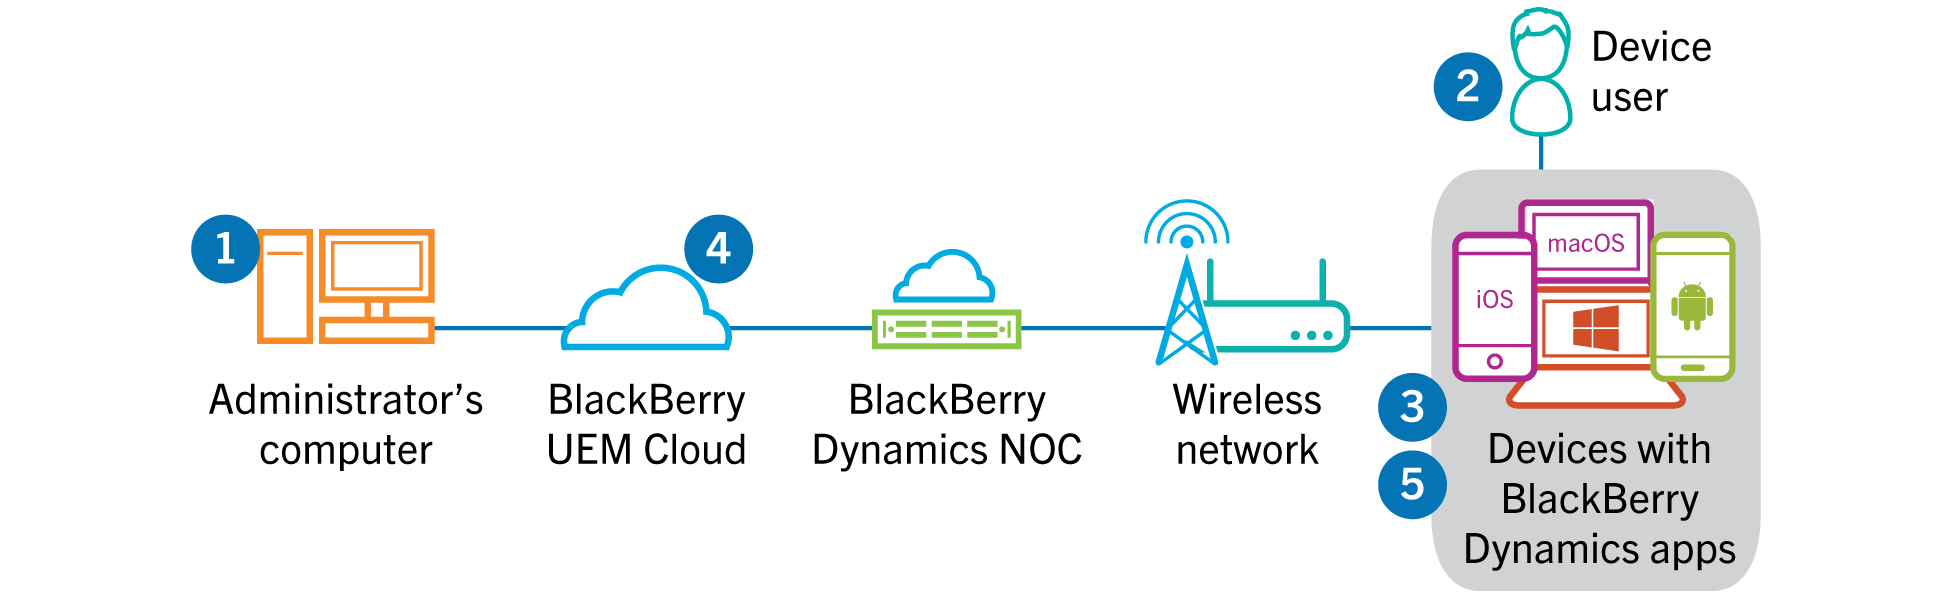 [SCHEMATICS_4LK]  Data flow: Activating a BlackBerry Dynamics app for the first time on a  device | Blackberry Wireless Network Diagram |  | BlackBerry Docs